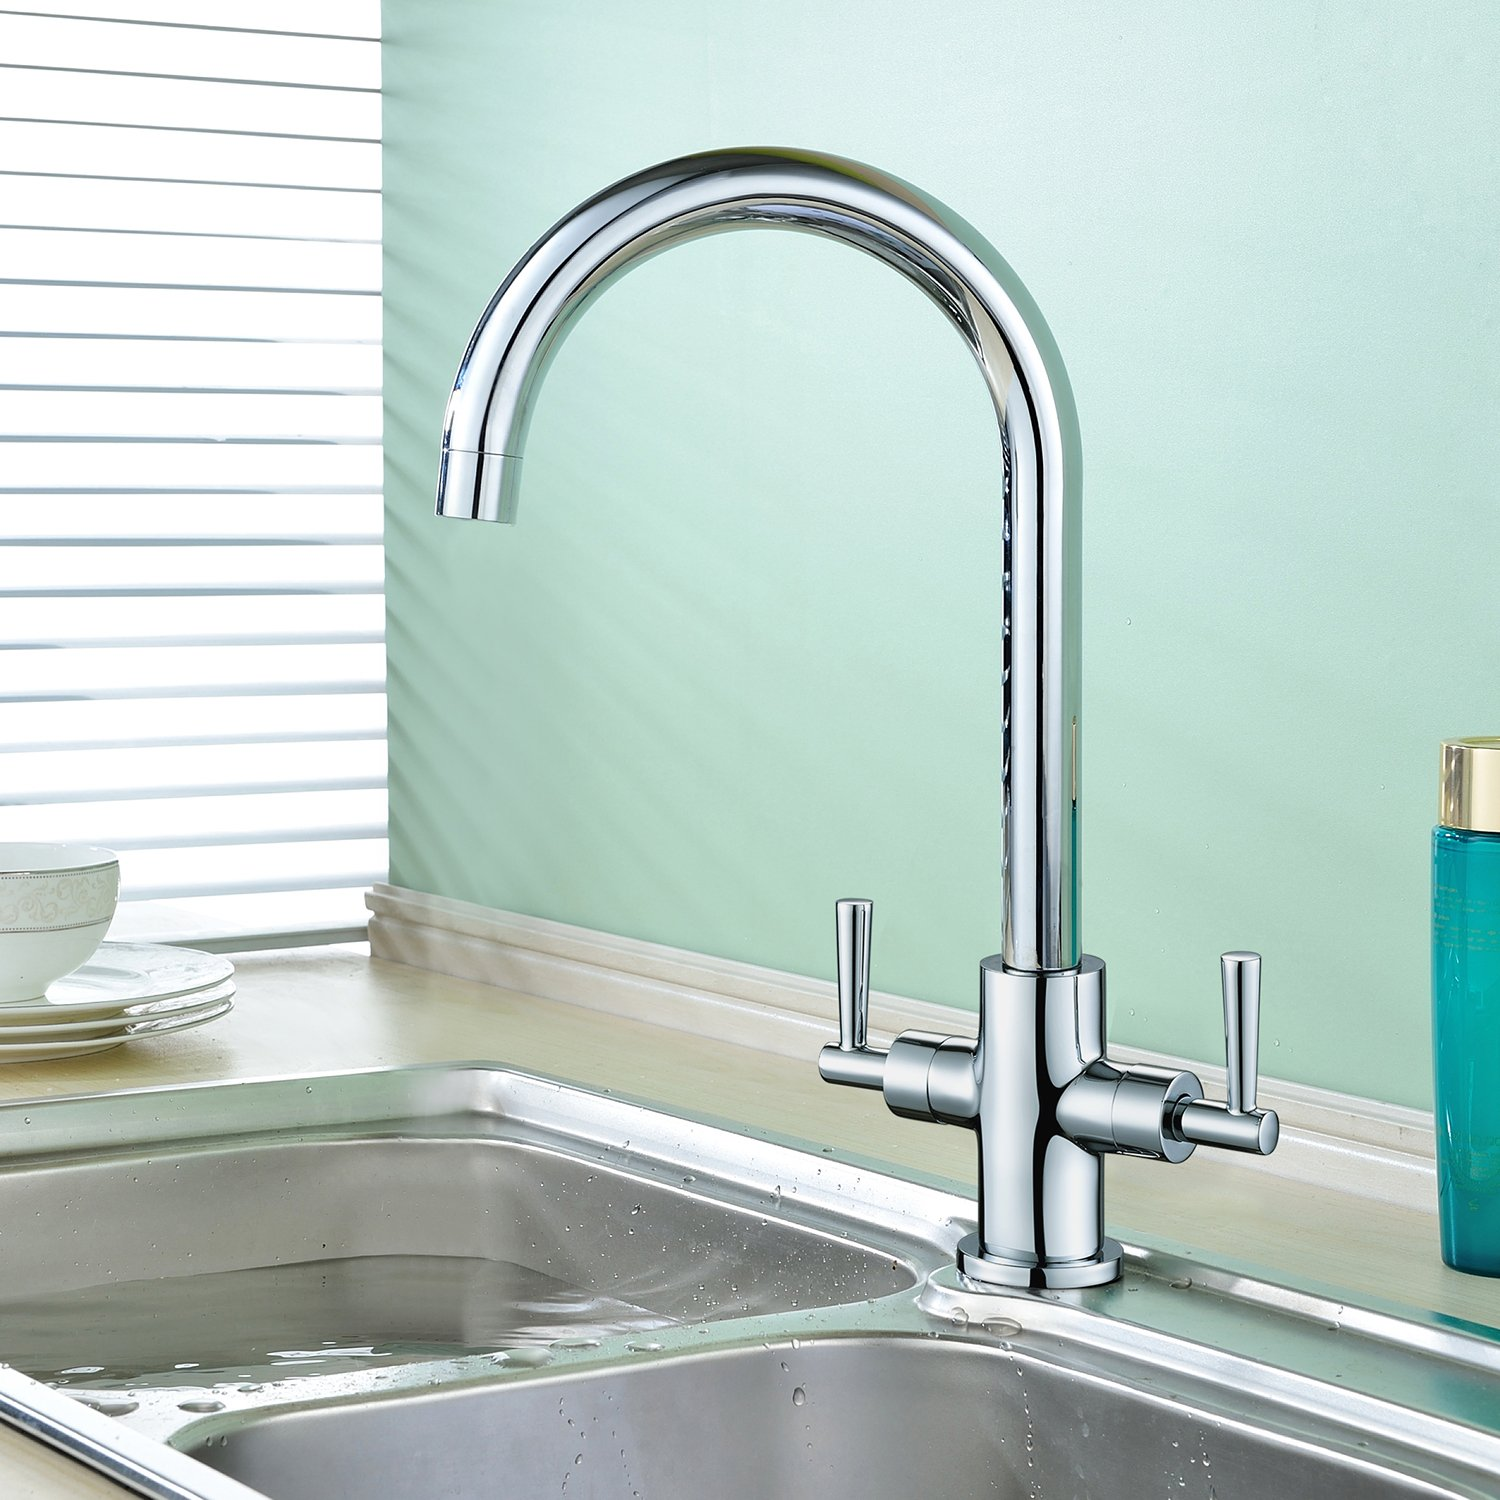 Hapilife Kitchen Tap Dual Lever with Swivel Spout, Sink Mixer Tap ...